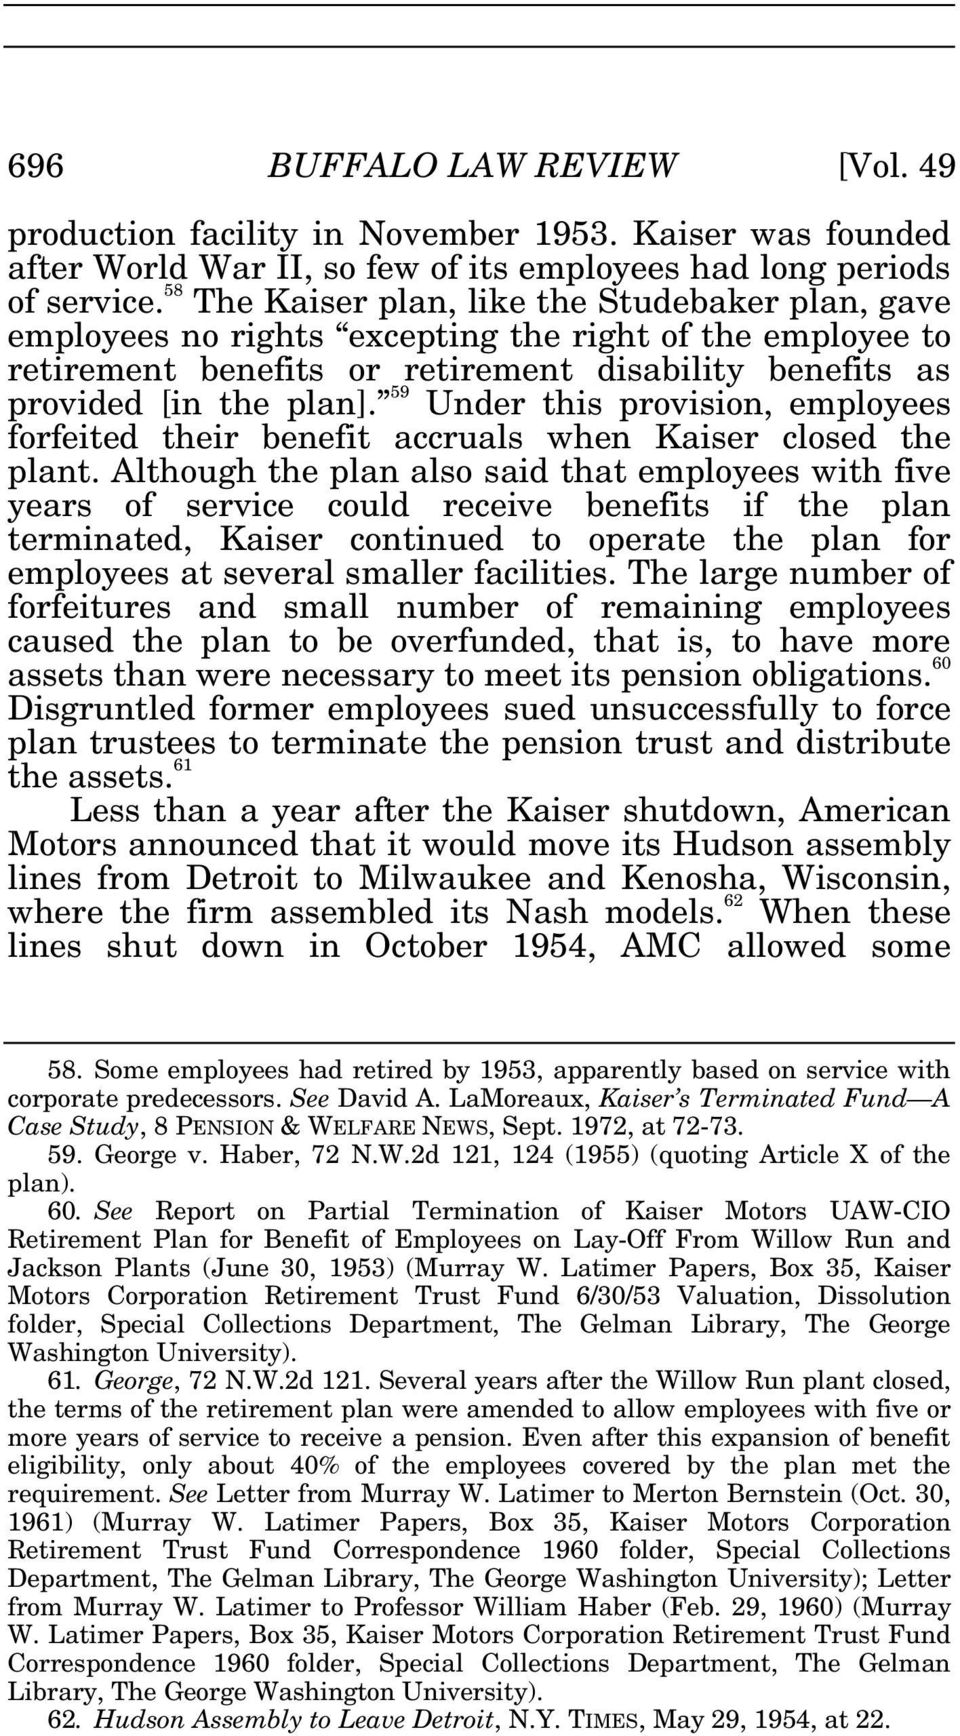 59 Under this provision, employees forfeited their benefit accruals when Kaiser closed the plant.